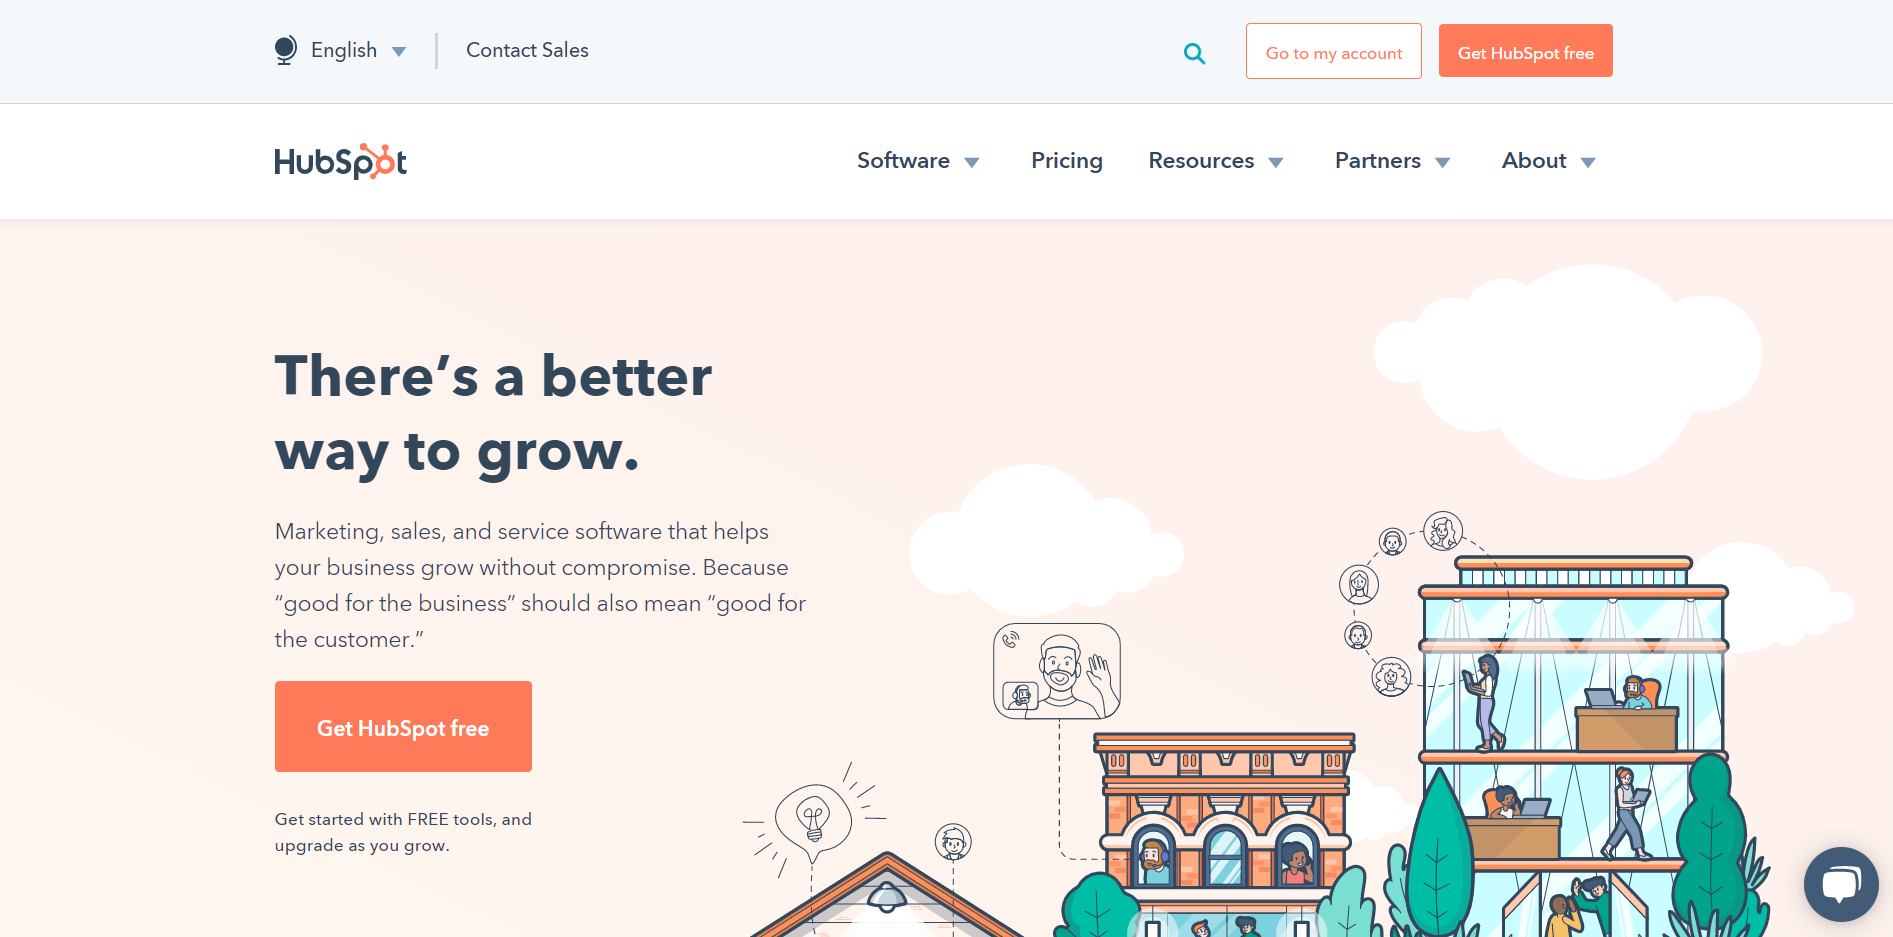 eCommerce Homepage Best Practices: HubSpot's Unique Value Proposition